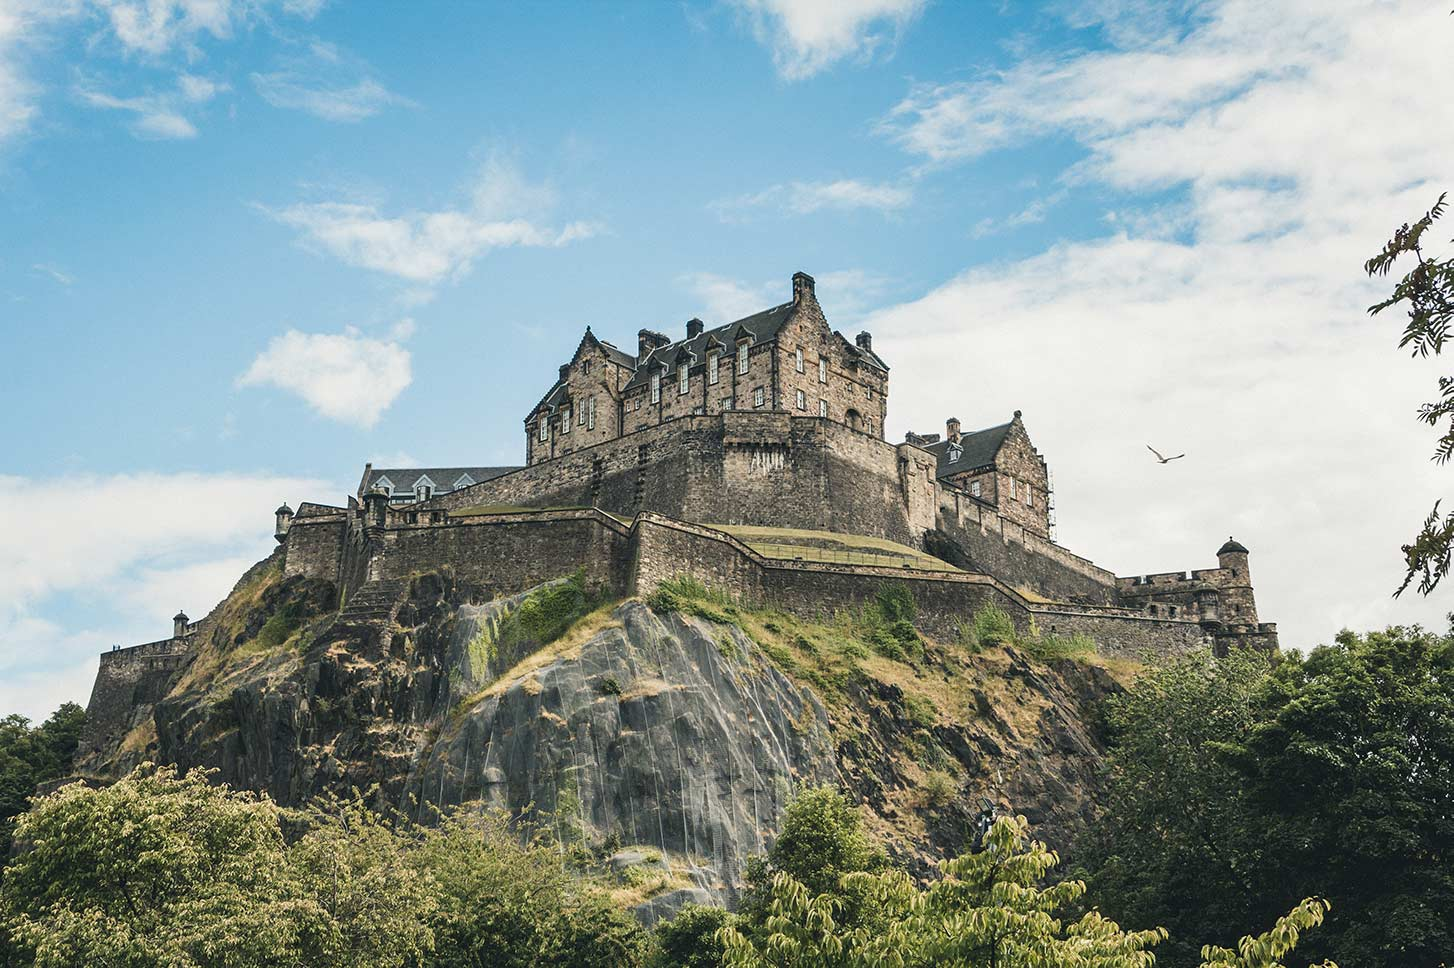 Edinburgh Castle upon a hill in Scotland.